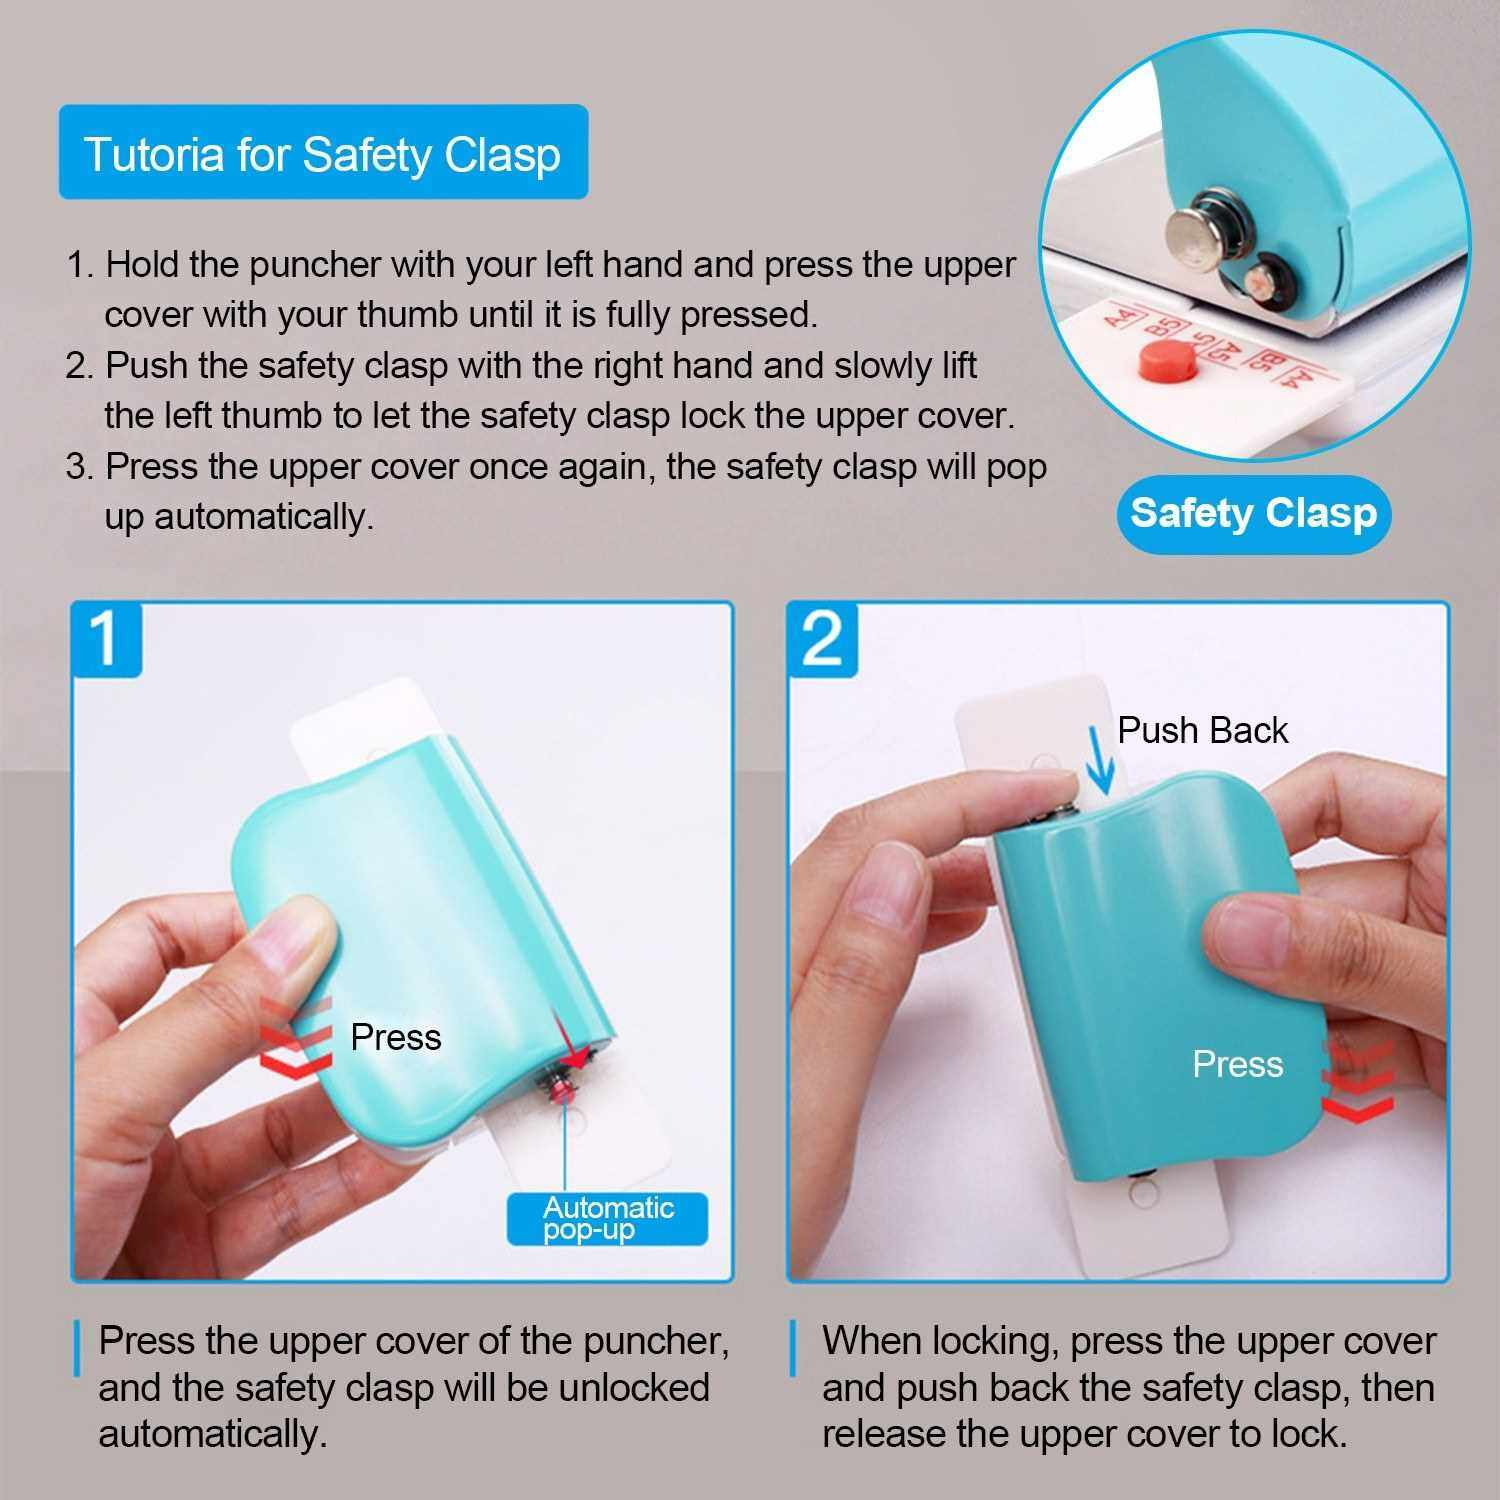 KW-trio 6-Hole Paper Punch Handheld Metal Hole Puncher 5 Sheet Capacity 6mm for A4 A5 B5 Notebook Scrapbook Diary Planner (Blue)